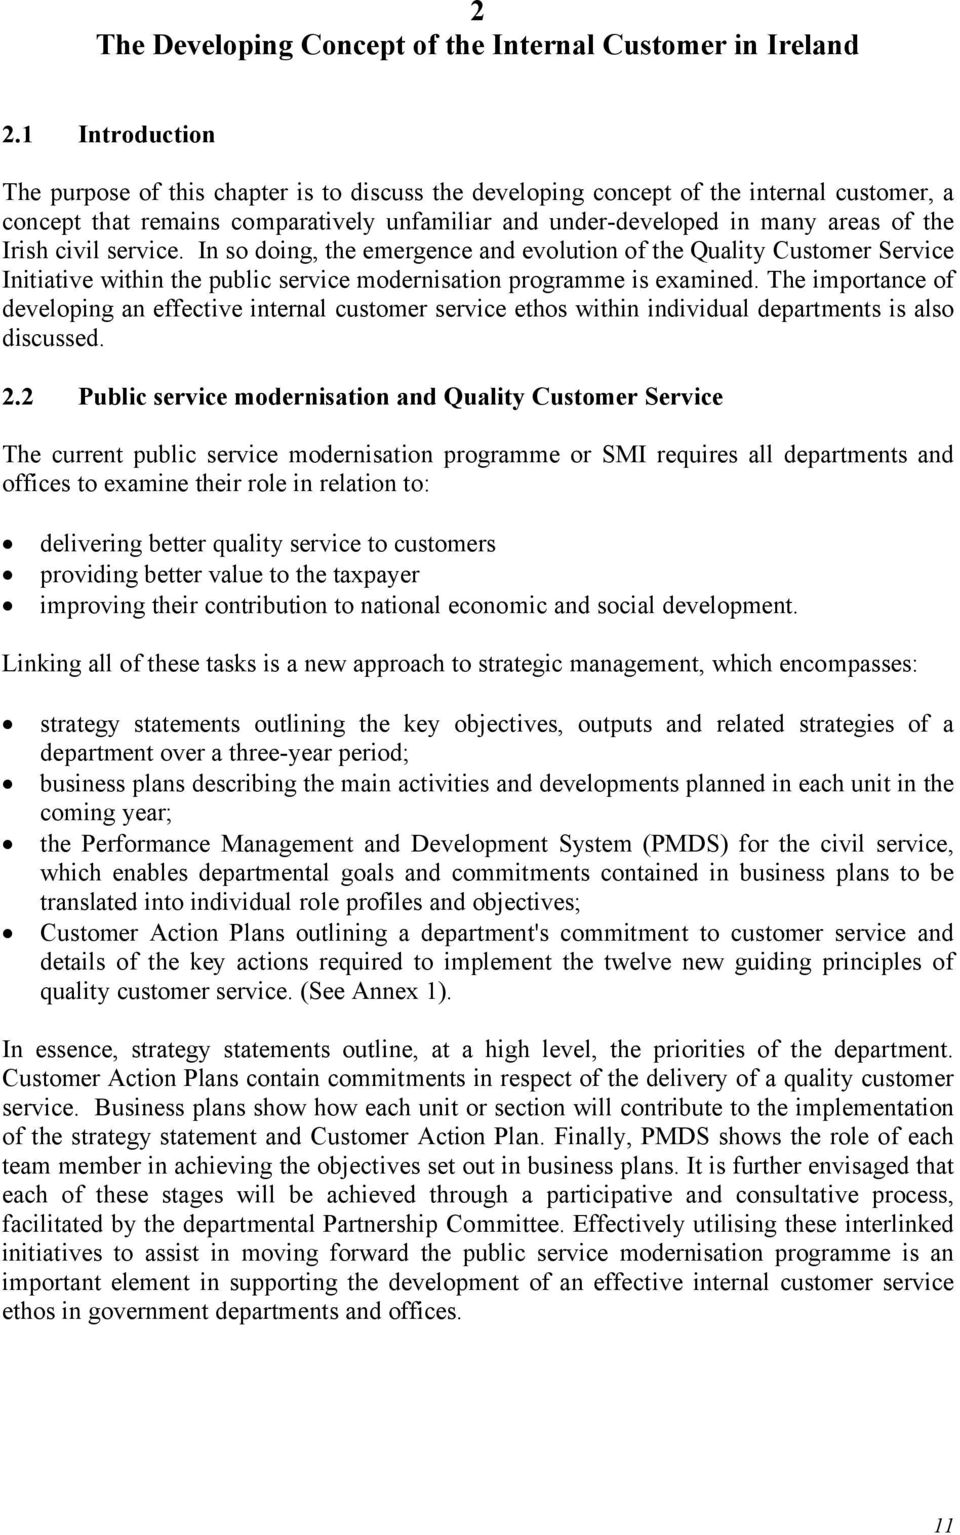 Irish civil service. In so doing, the emergence and evolution of the Quality Customer Service Initiative within the public service modernisation programme is examined.